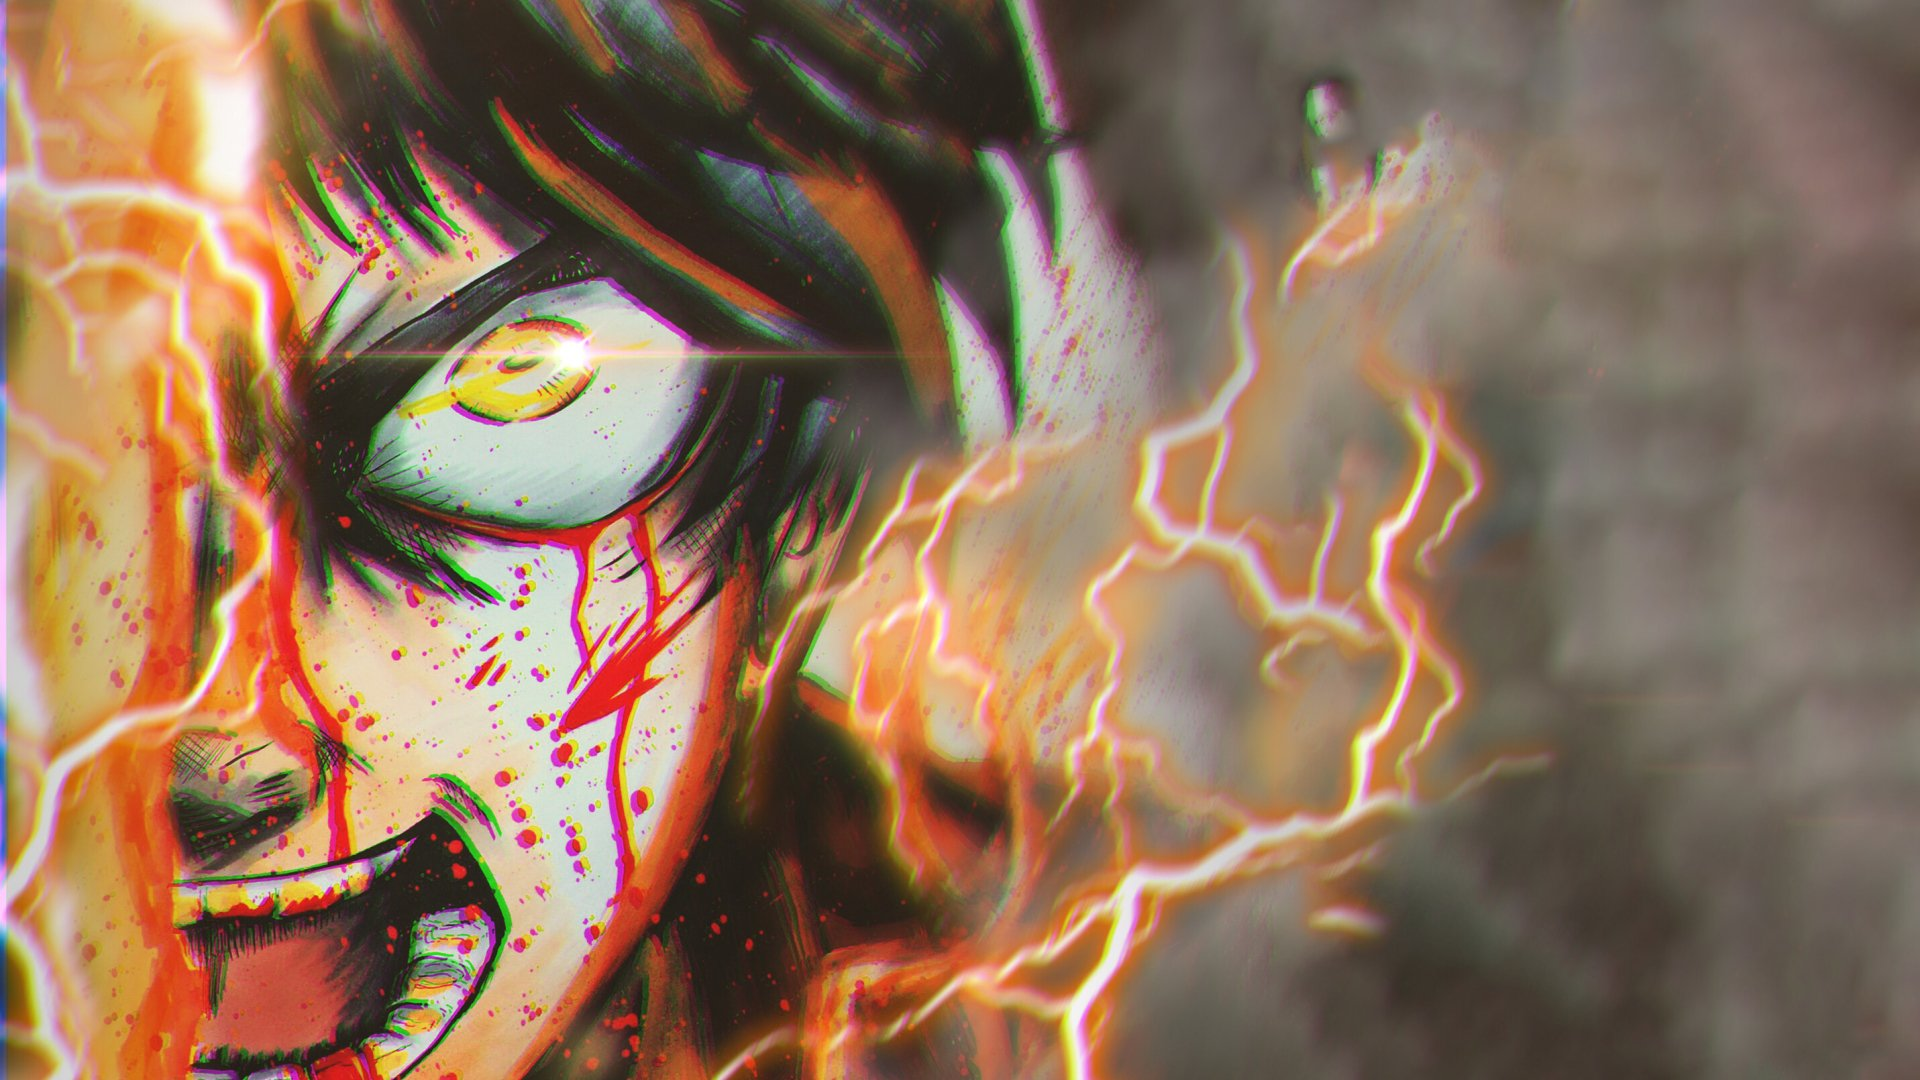 Attack on Titan Chapter 137 Spoilers, Theories and Predictions